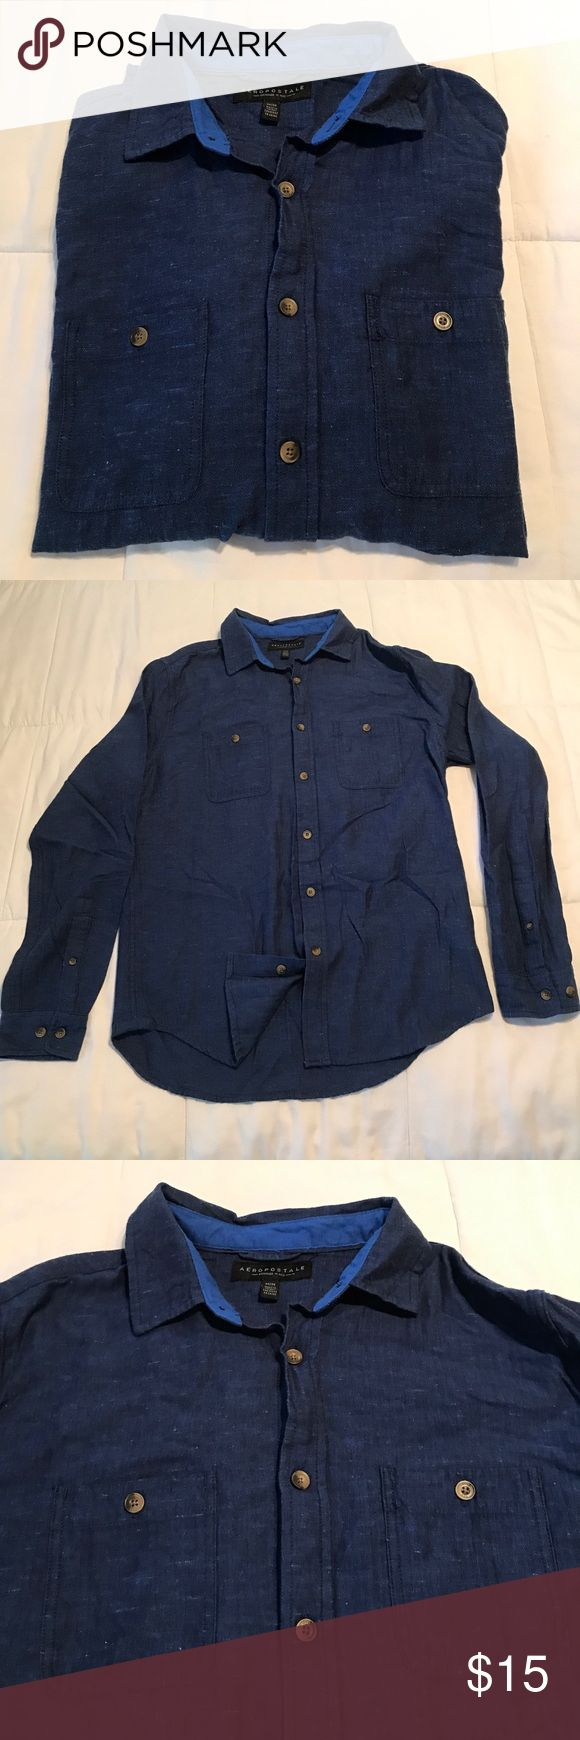 Aeropostale men's long sleeve dress up shirt Aeropostale men's long sleeve dress up shirt. EUC. Size M. With two pockets on the front. Navy Blue in color Aeropostale Shirts Dress Shirts